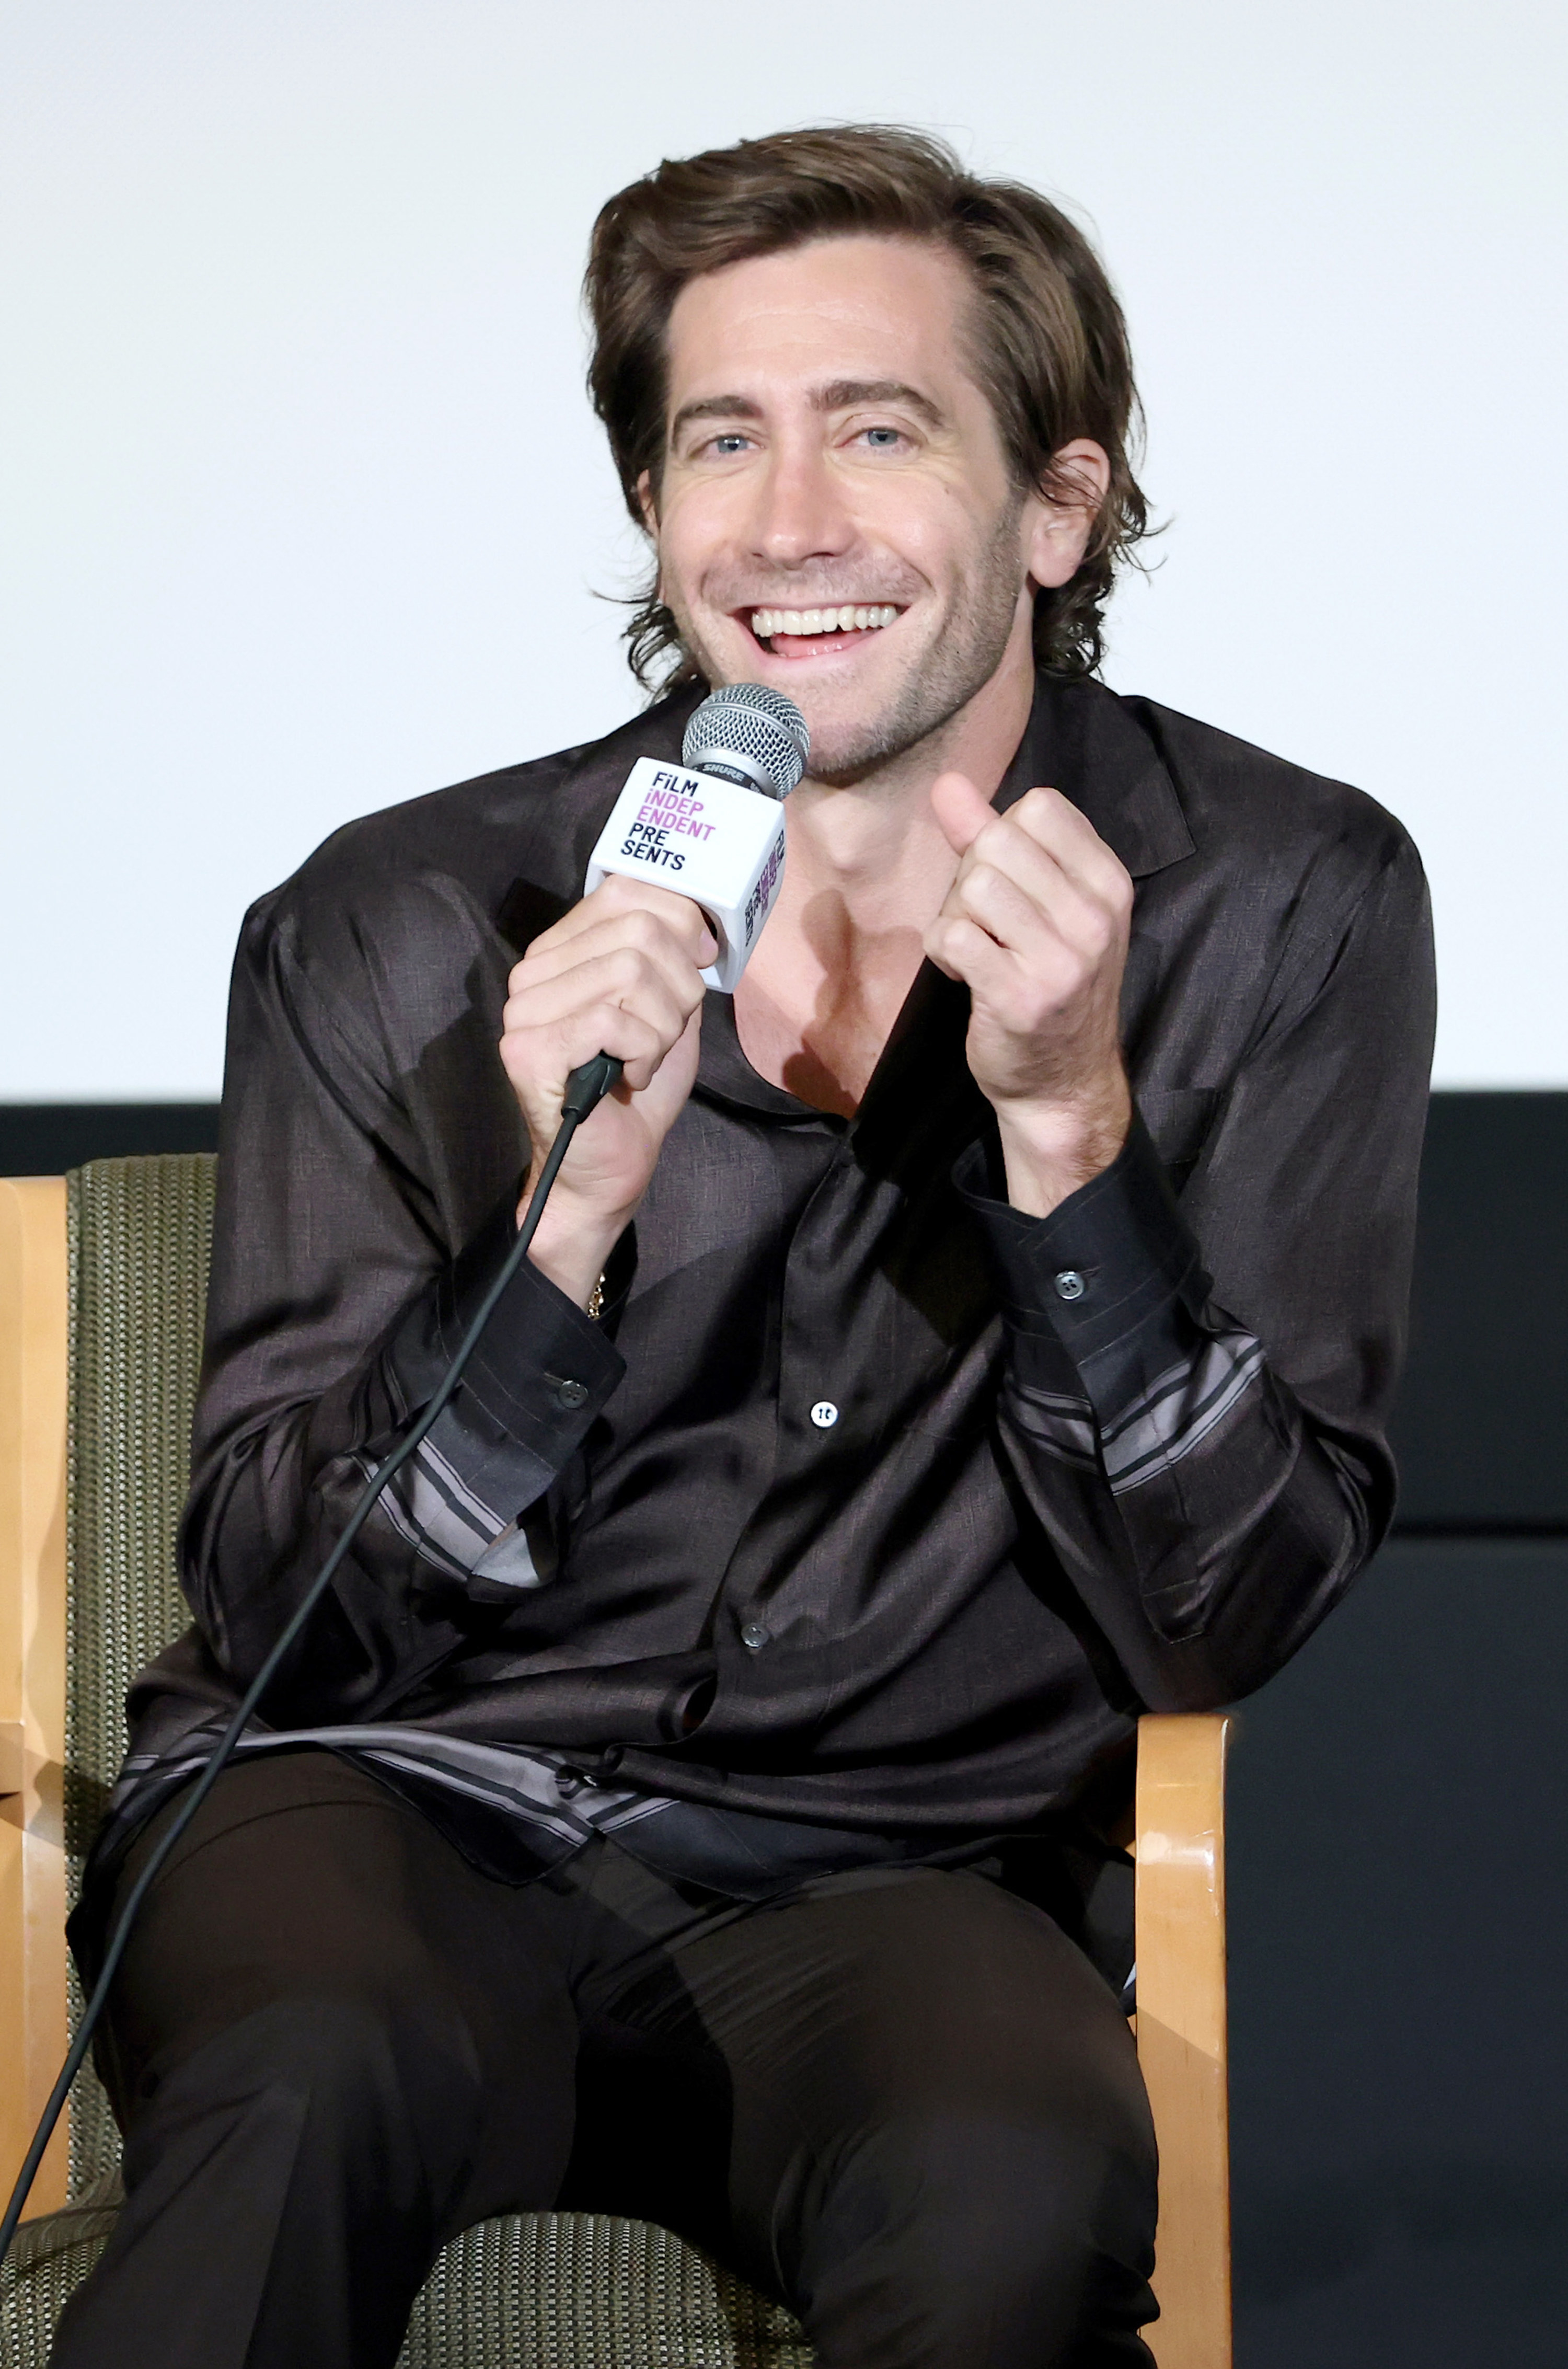 Gyllenhaal laughs while sitting in a chair and talking into a microphone